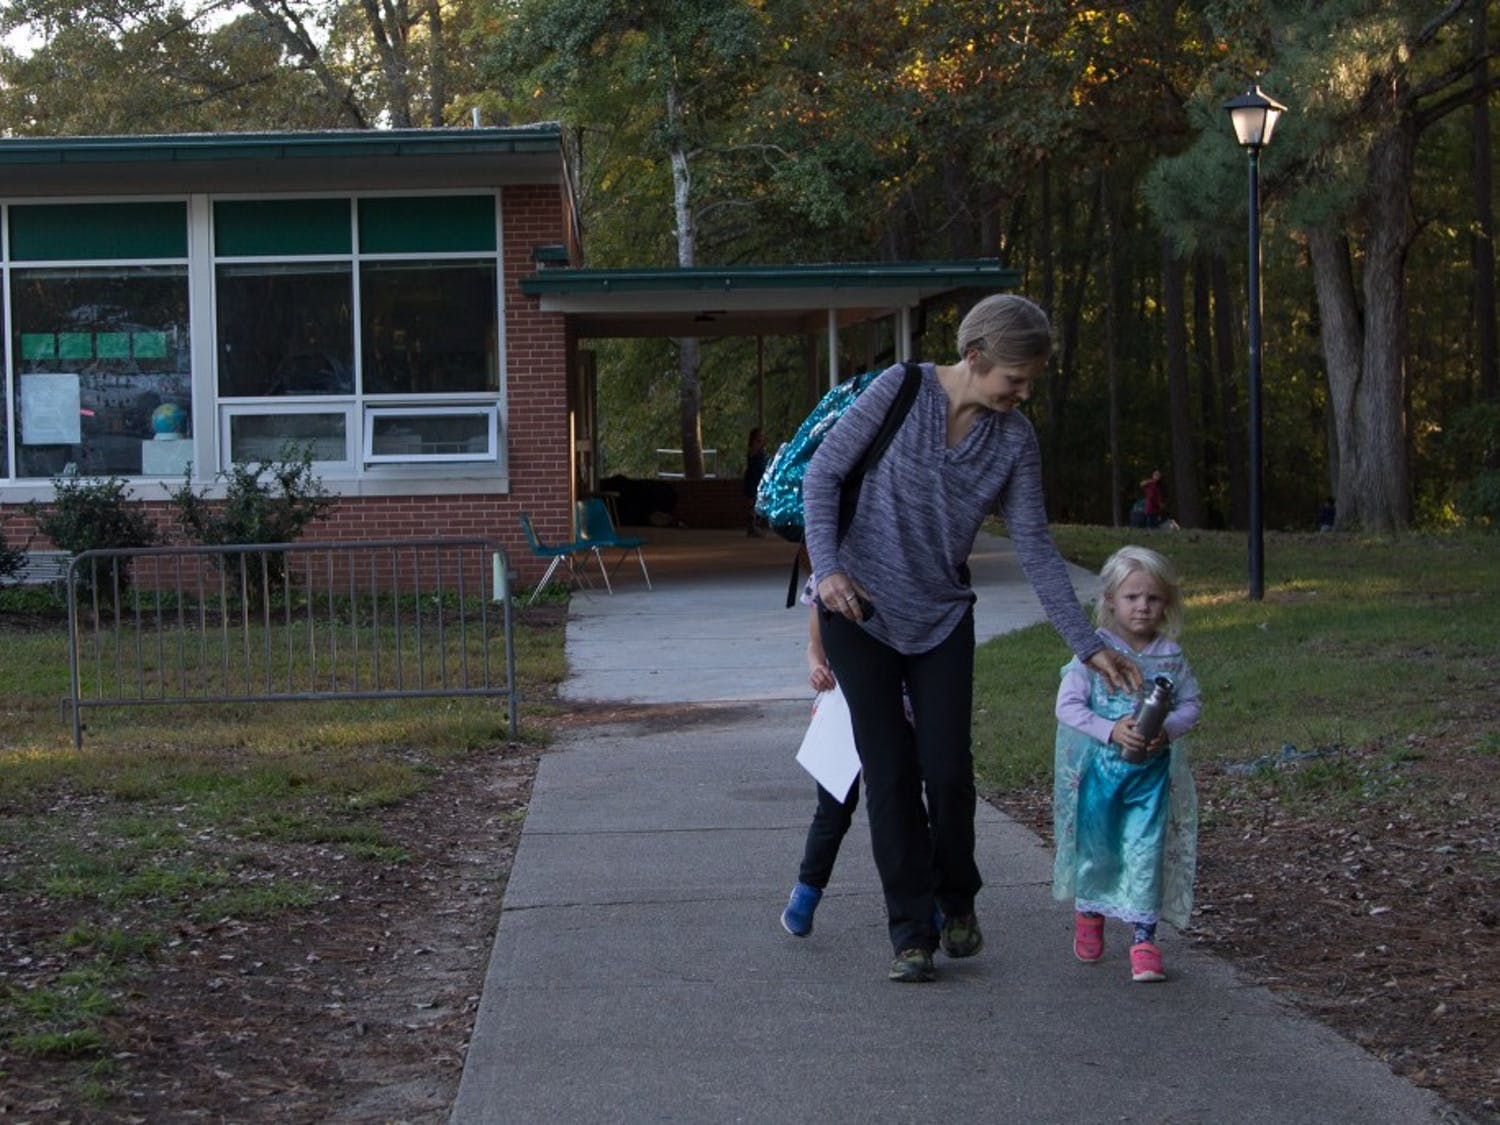 """Becca Wright, parent of 2 Glenwood children, Eaden and Elsa leaves with her daughter Mable after school on Tuesday Oct. 30. """"I'm just glad the program isn't ending"""". Wright says as her children run circles around her."""